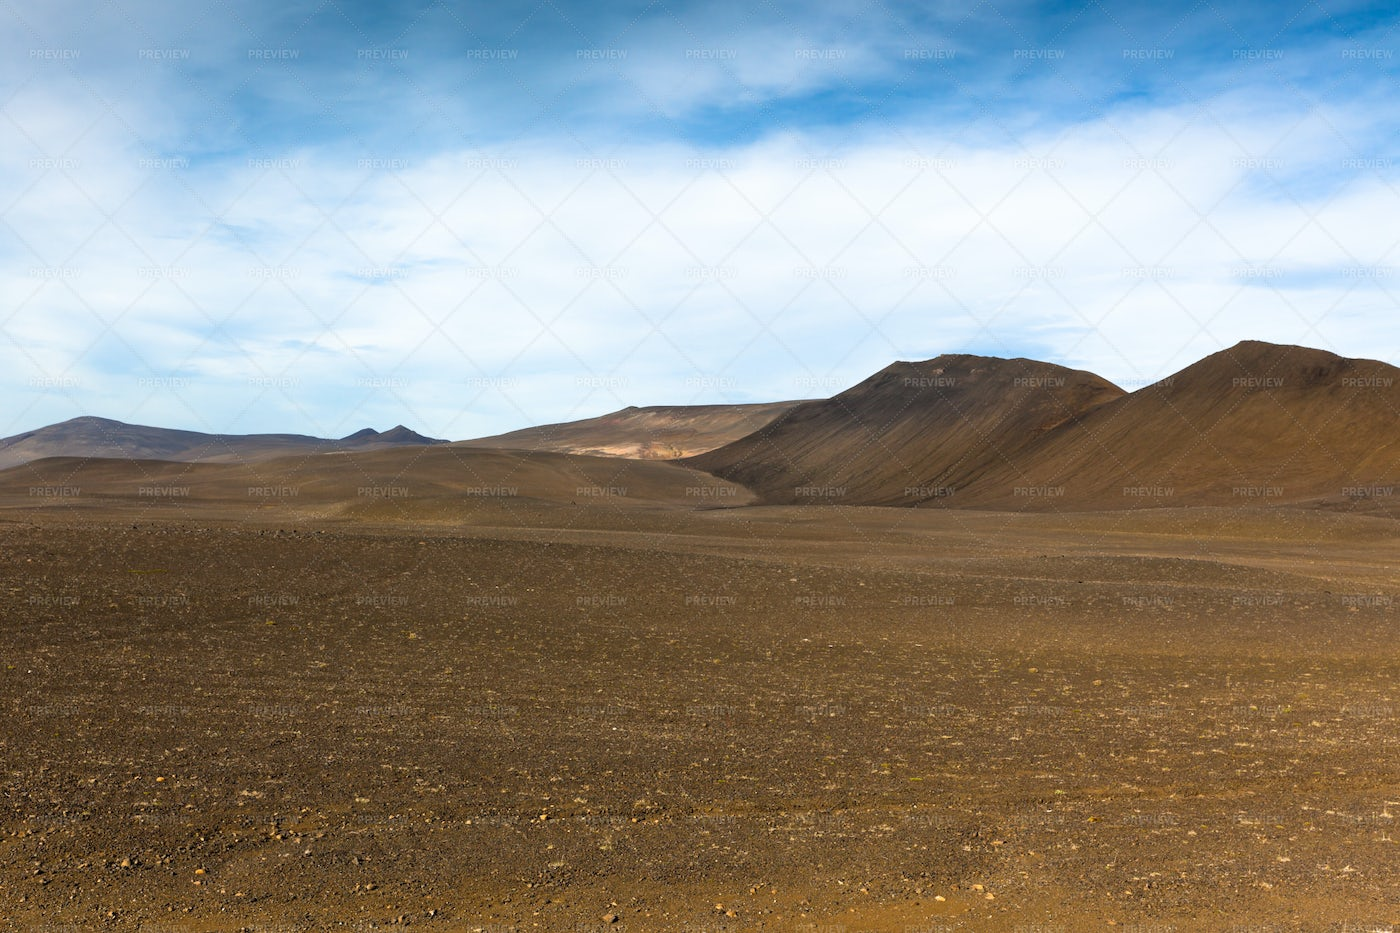 Dry Gravel Iceland Landscape: Stock Photos